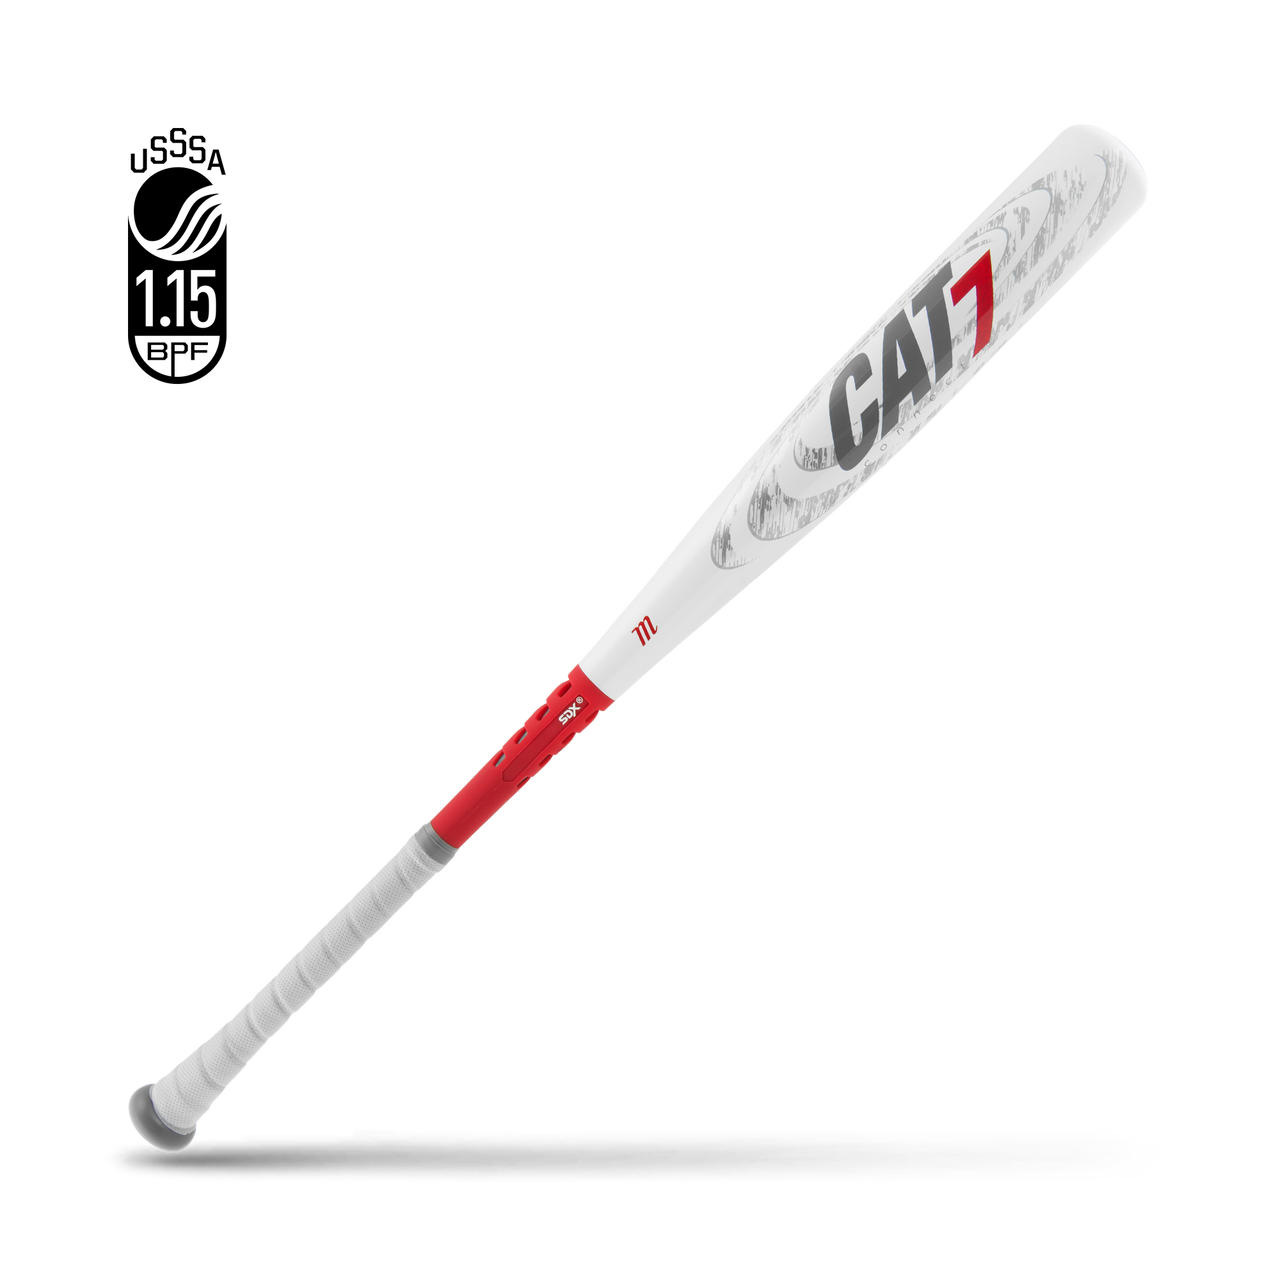 Marucci CAT7 Connect -5 Senior League Bat